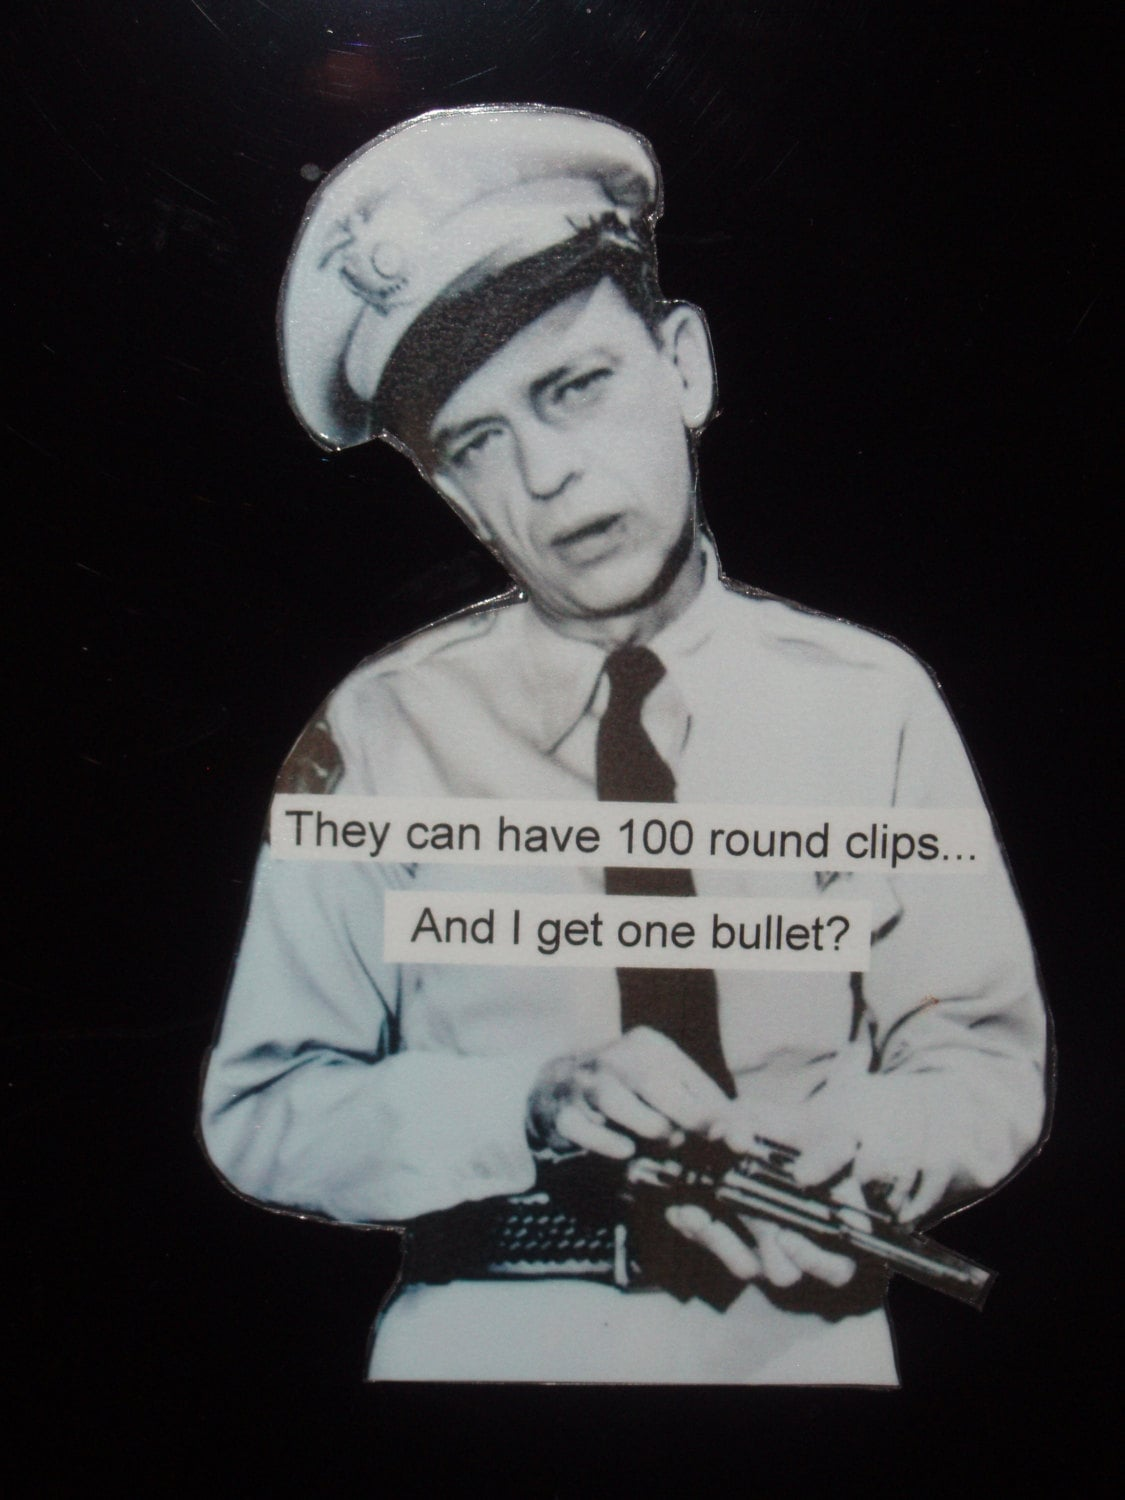 Barney Fife Quotes Magnet Barney Fife Gets One Bullet Funny Gun Truth